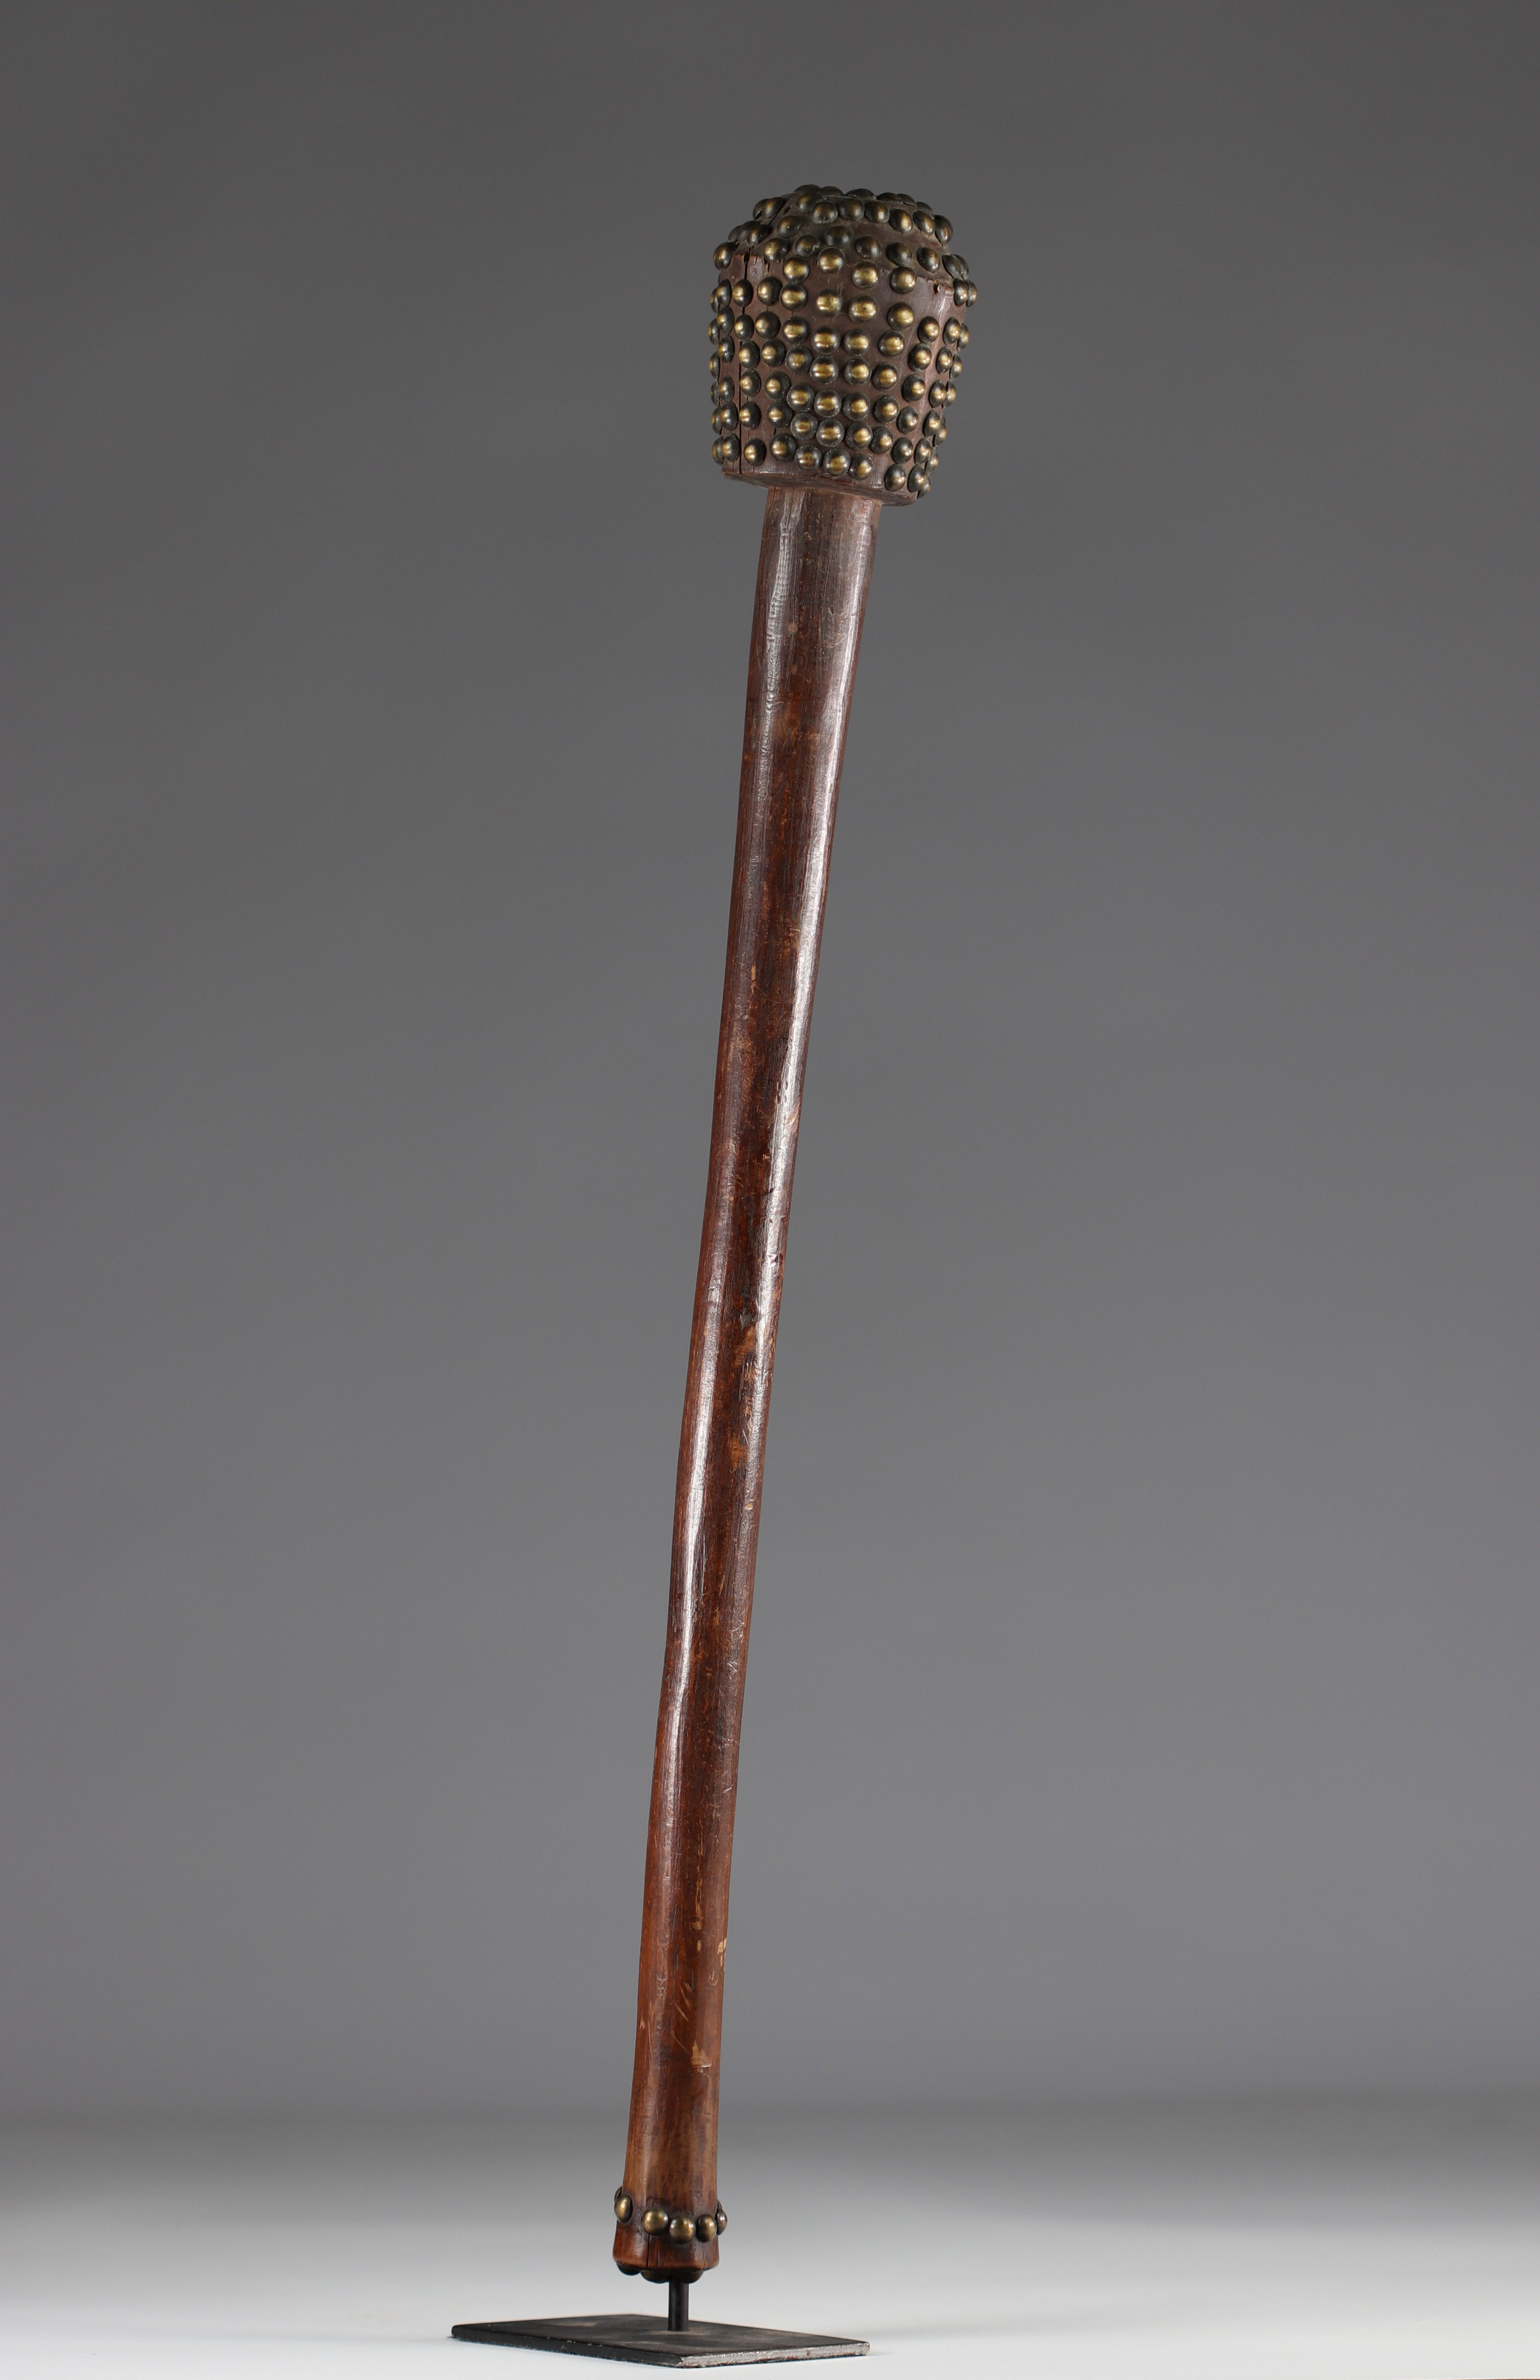 Tchokwe club - coll. private Belgian - early 20th century - DRC - Africa - Image 2 of 2